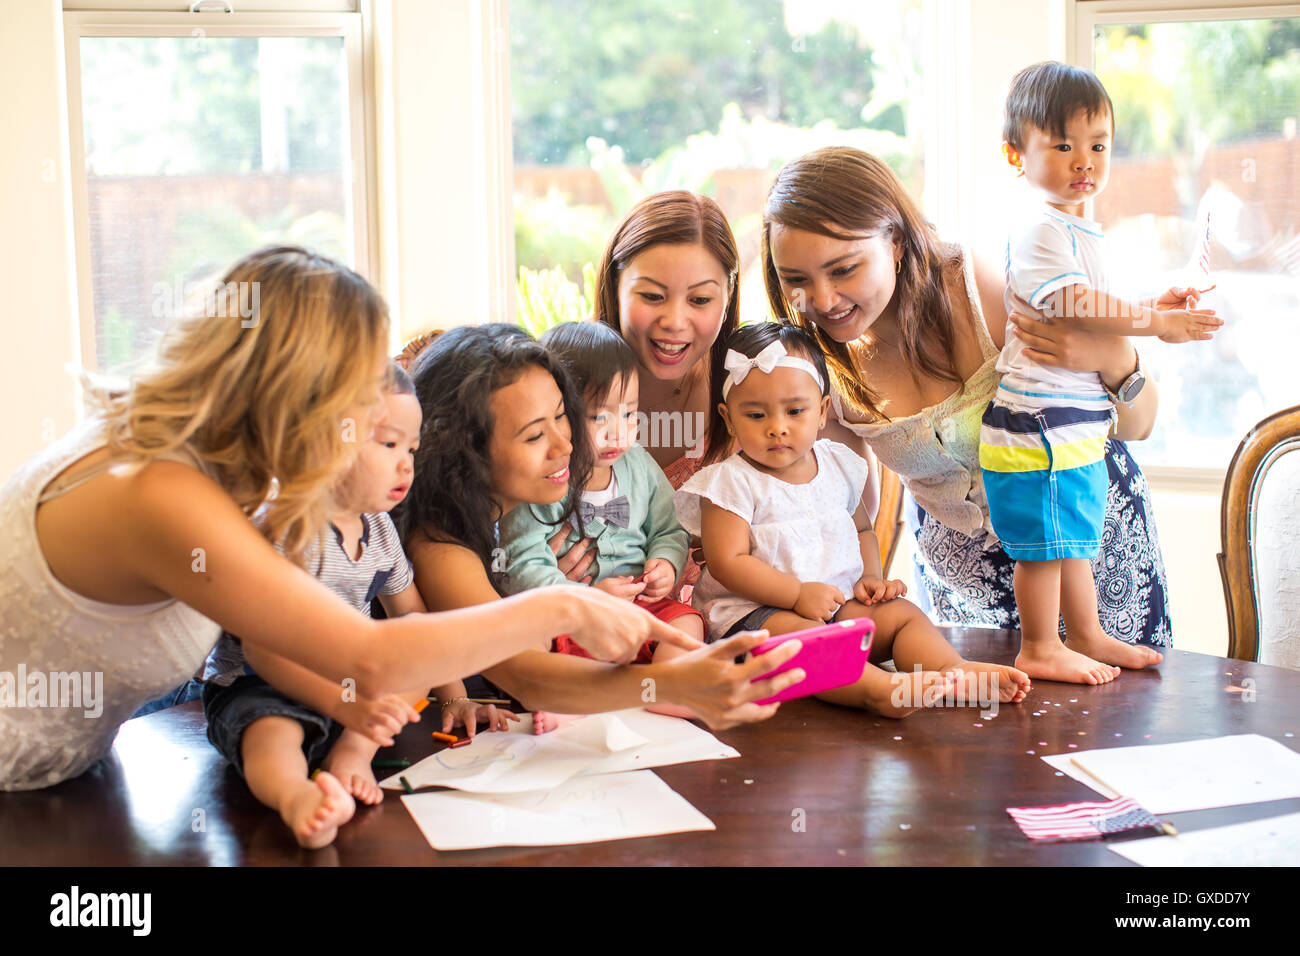 Woman taking selfie with mothers and babies at dining table - Stock Image